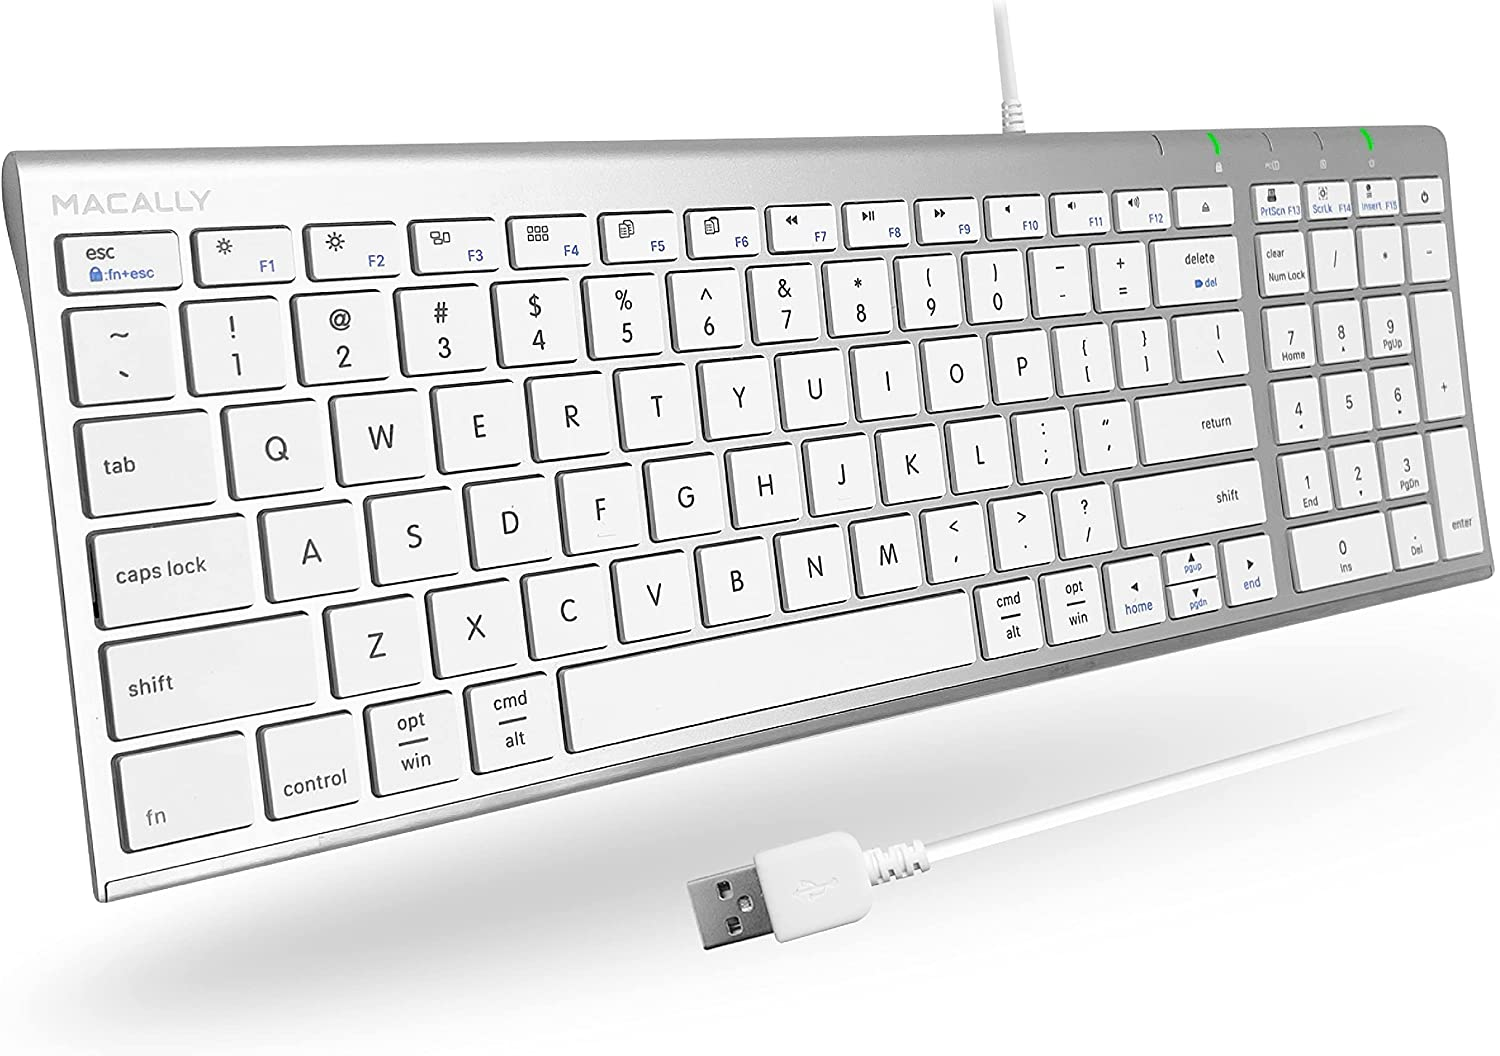 Macally Small USB Keyboard Wired for Mac and Windows PC - Space Saving 2-Zone Layout - Full Size Compact Keyboard for Laptop with Slim Steel Body and 5ft USB Cable - Compatible Apple Keyboard Small